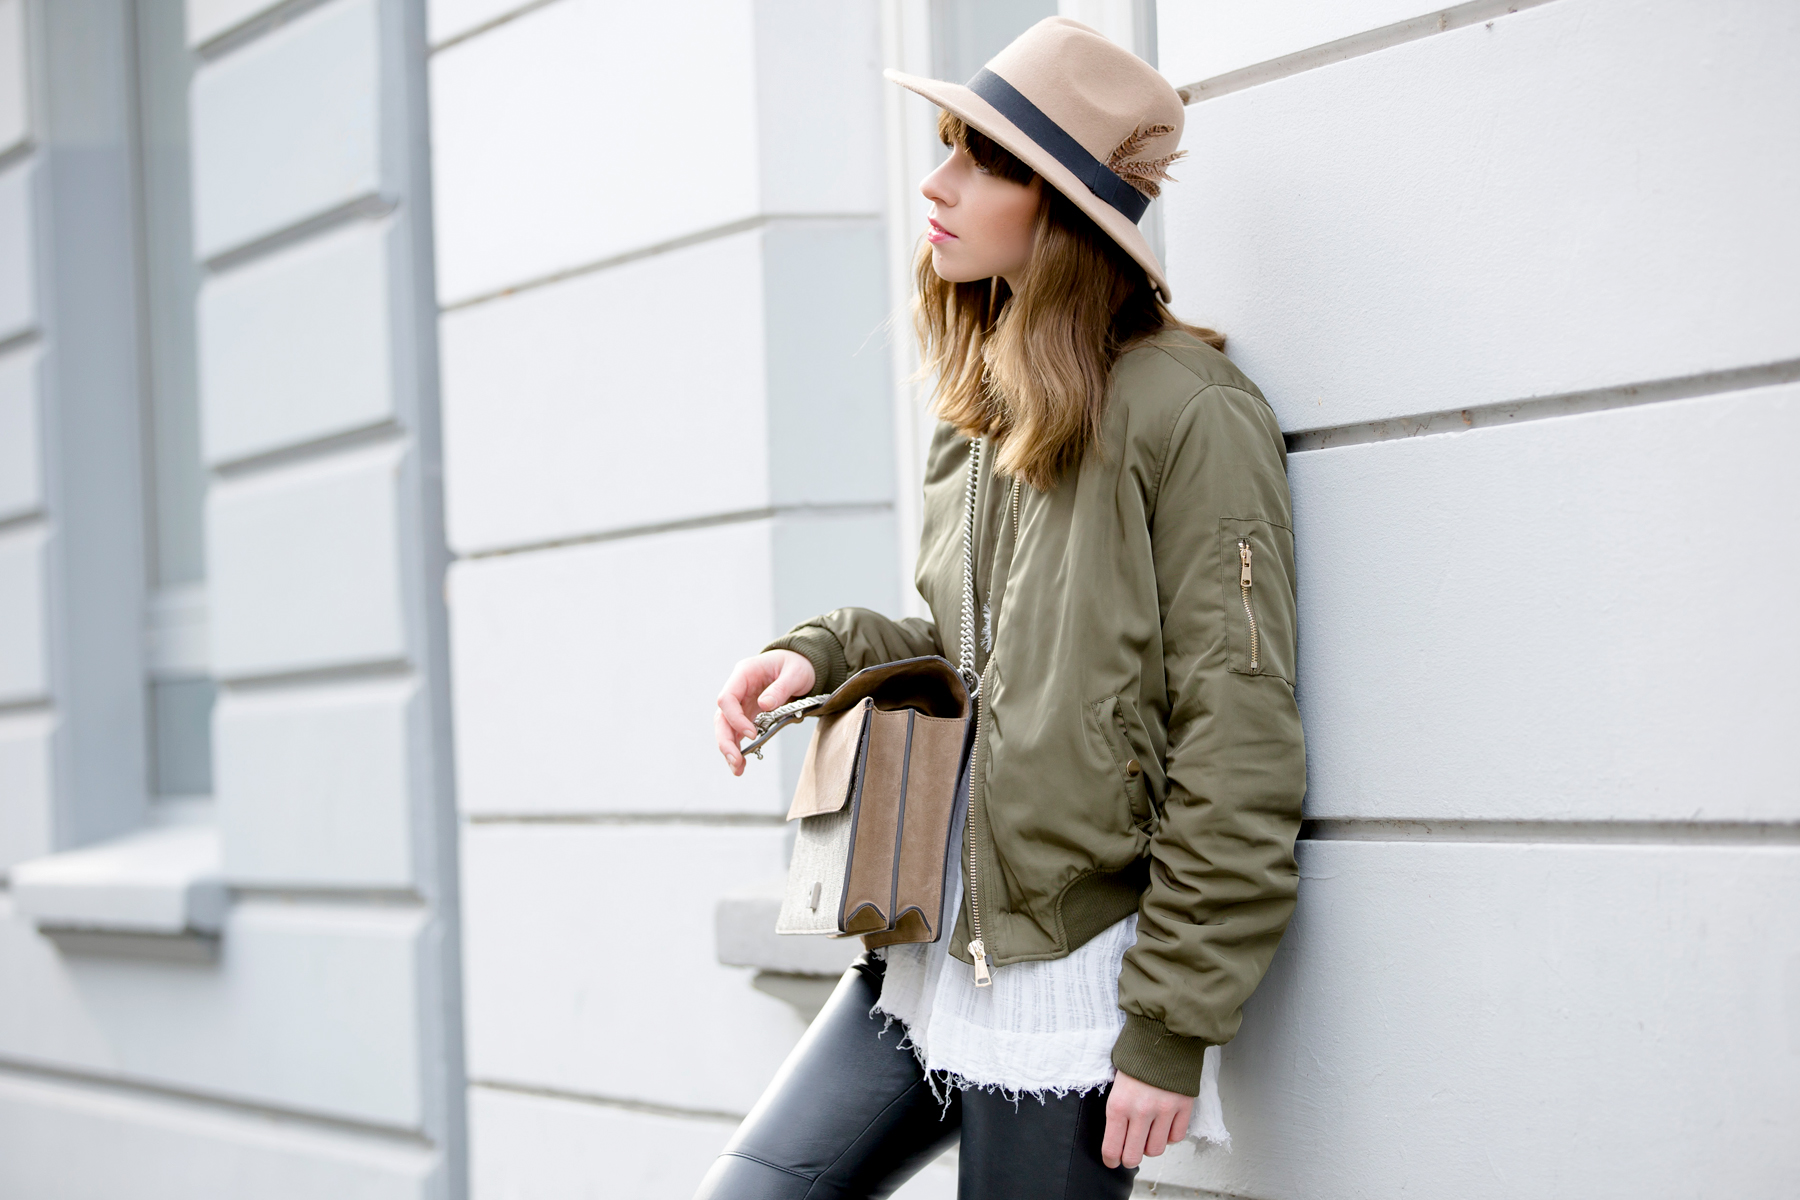 bomber jacket bomberjacke chanel slingbacks lookalike heine pumps chic gucci dionysus hat cute hipster style fashionblogger modeblogger düsseldorf styleblogger berlin high end luxury chic ricarda schernus cats & dogs blog 3